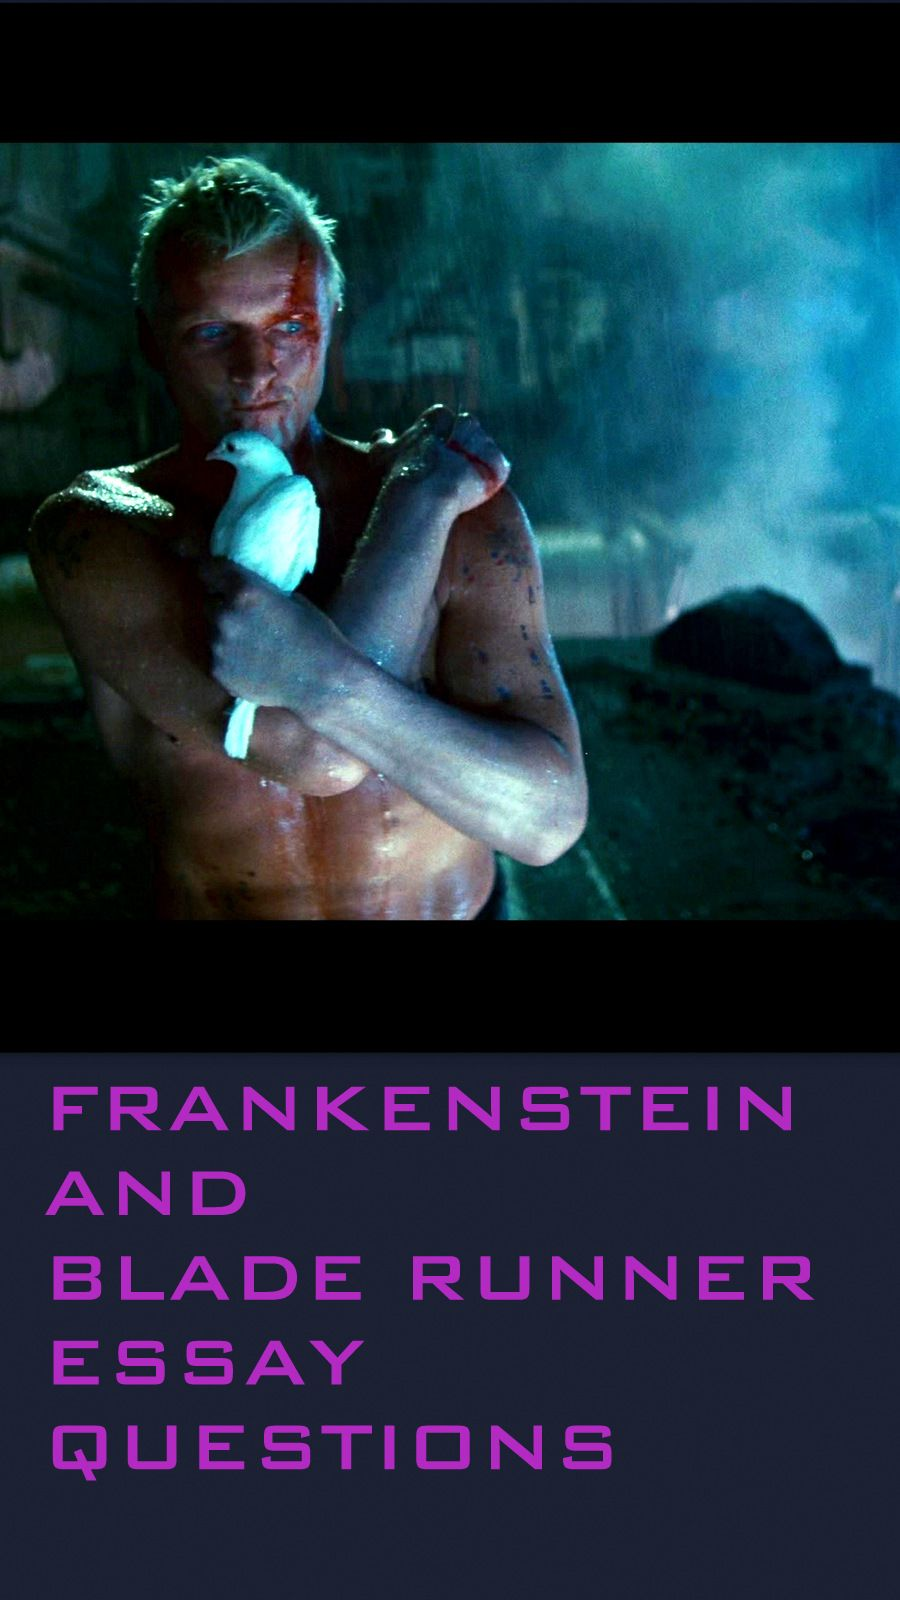 frankenstein and blade runner essay questions literature novel frankenstein and blade runner included here acirc158cent information on the novel s subtitle the